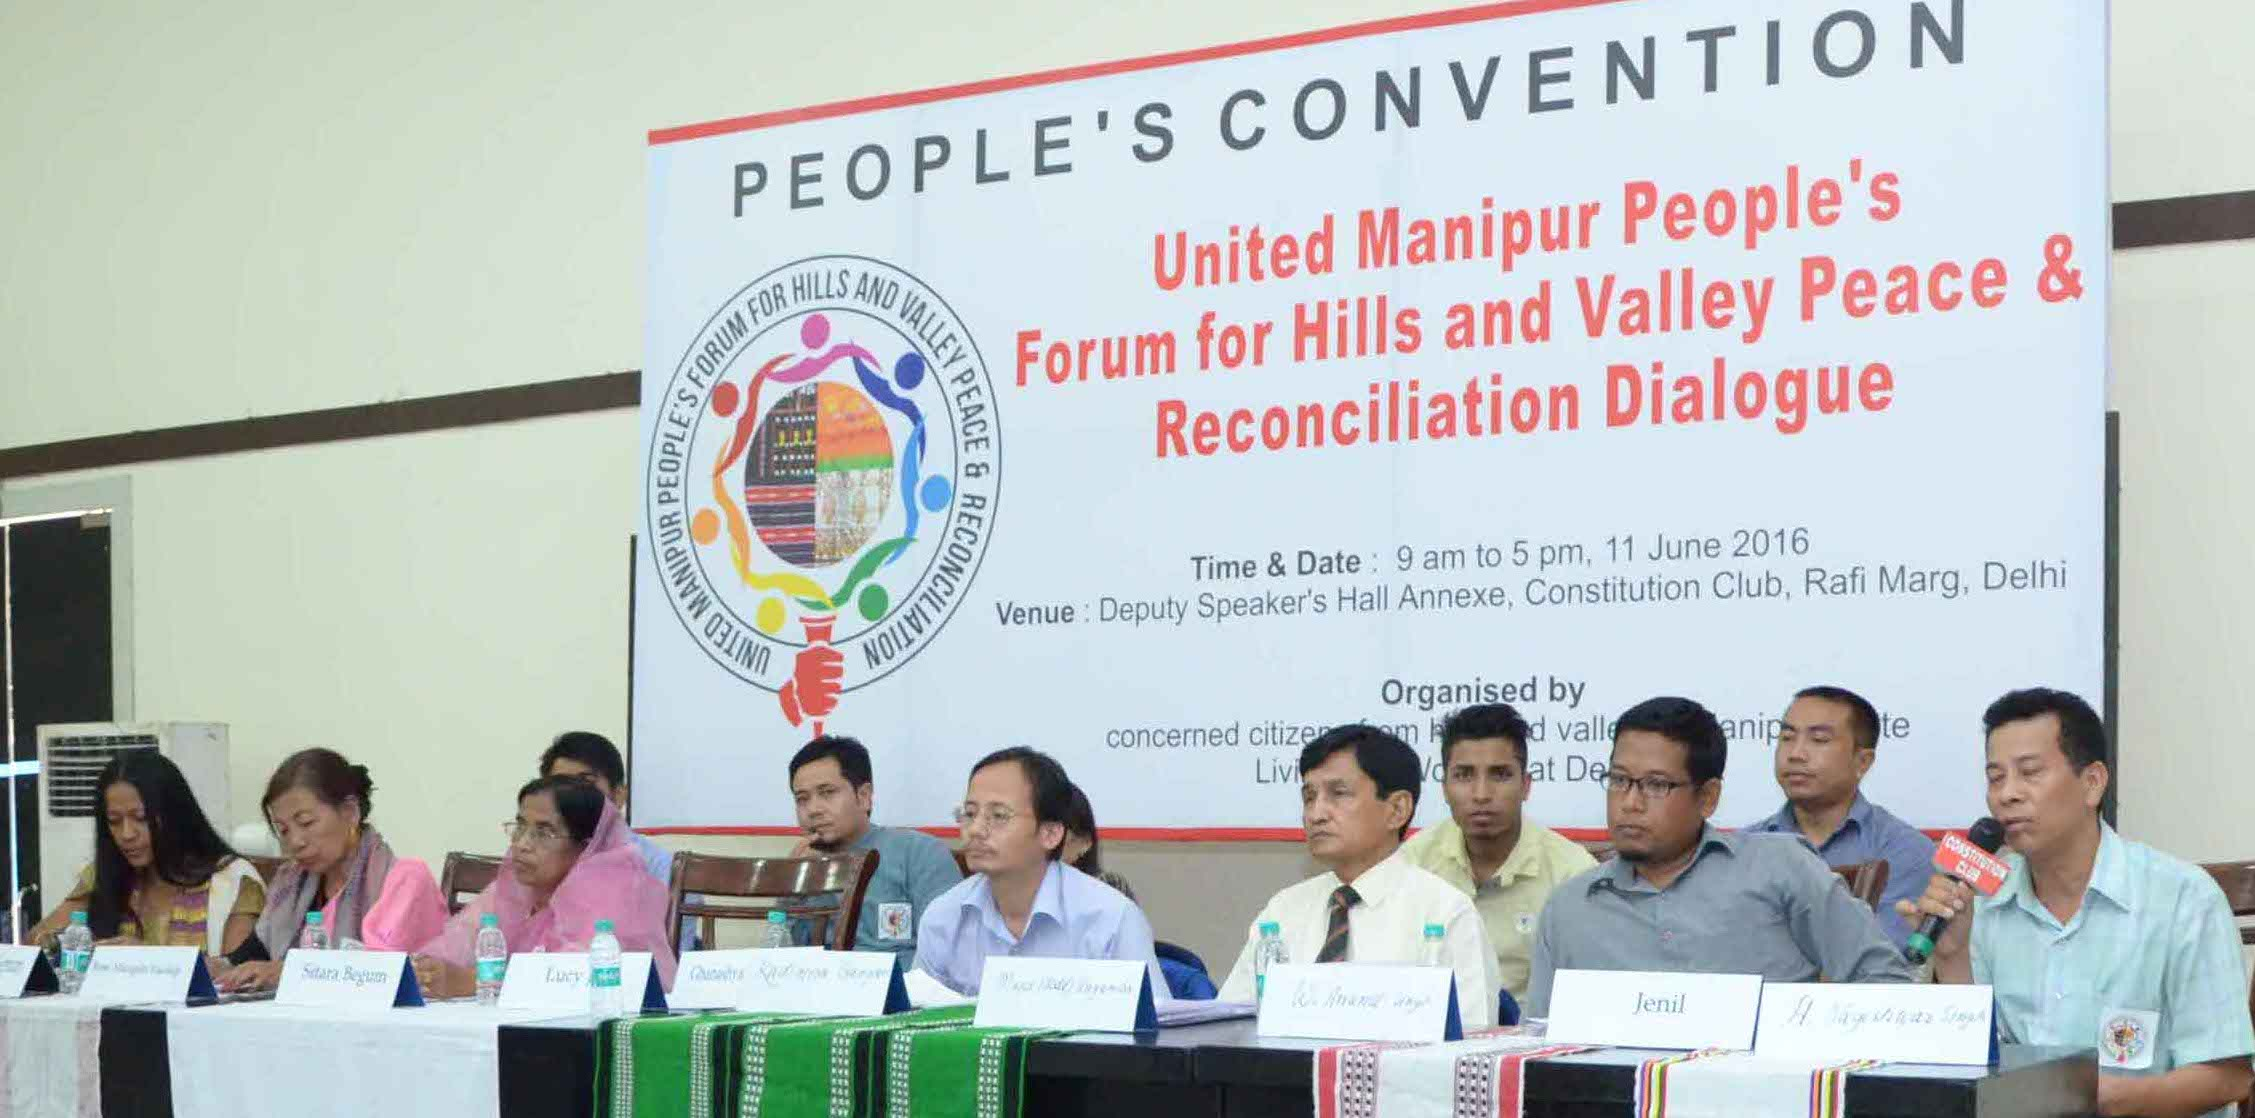 Historic Manipur People's Convention For A United Hills and Valley Peace & Reconciliation Dialogue